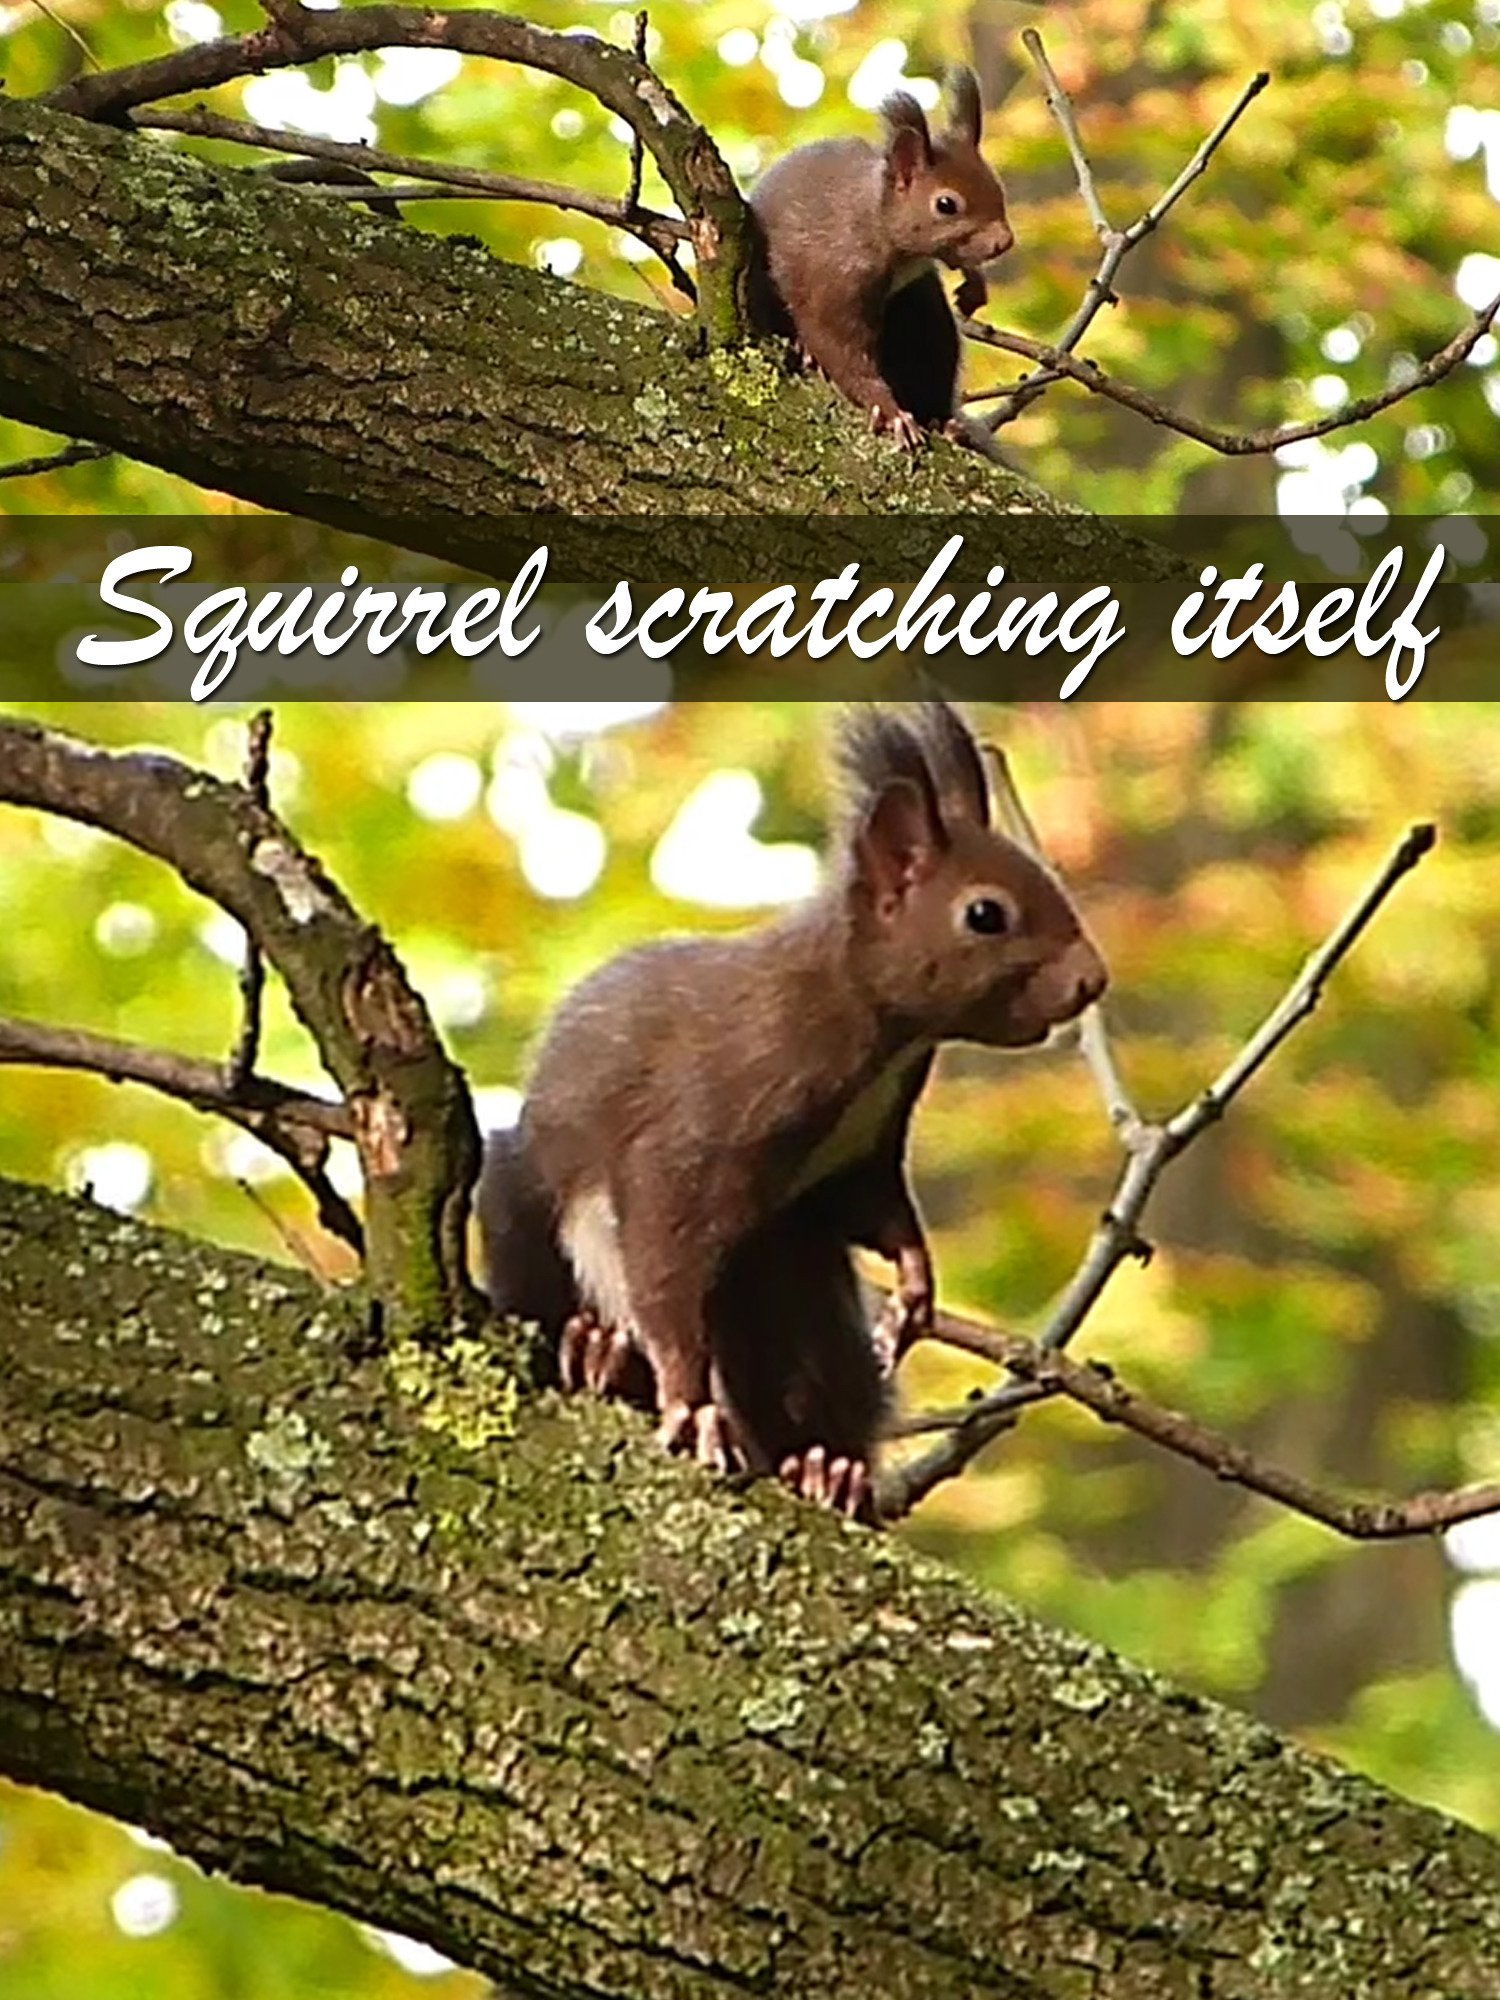 Clip: Squirrel scratching itself